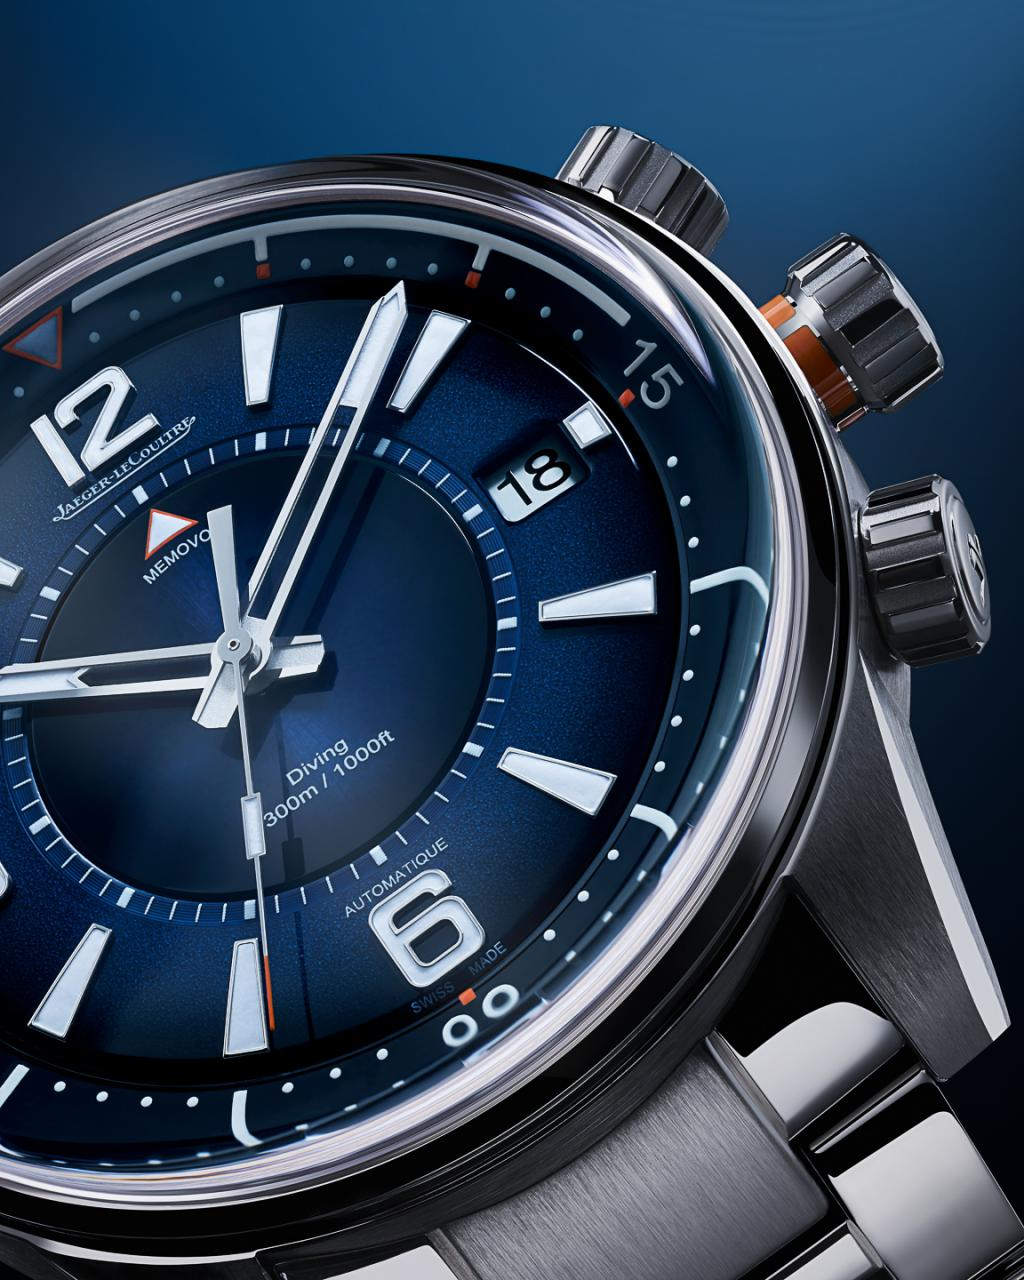 Jaeger-LeCoultre Introduces The Polaris Mariner: A Pair Of Serious ISO 6425-Rated Dive fake Watches